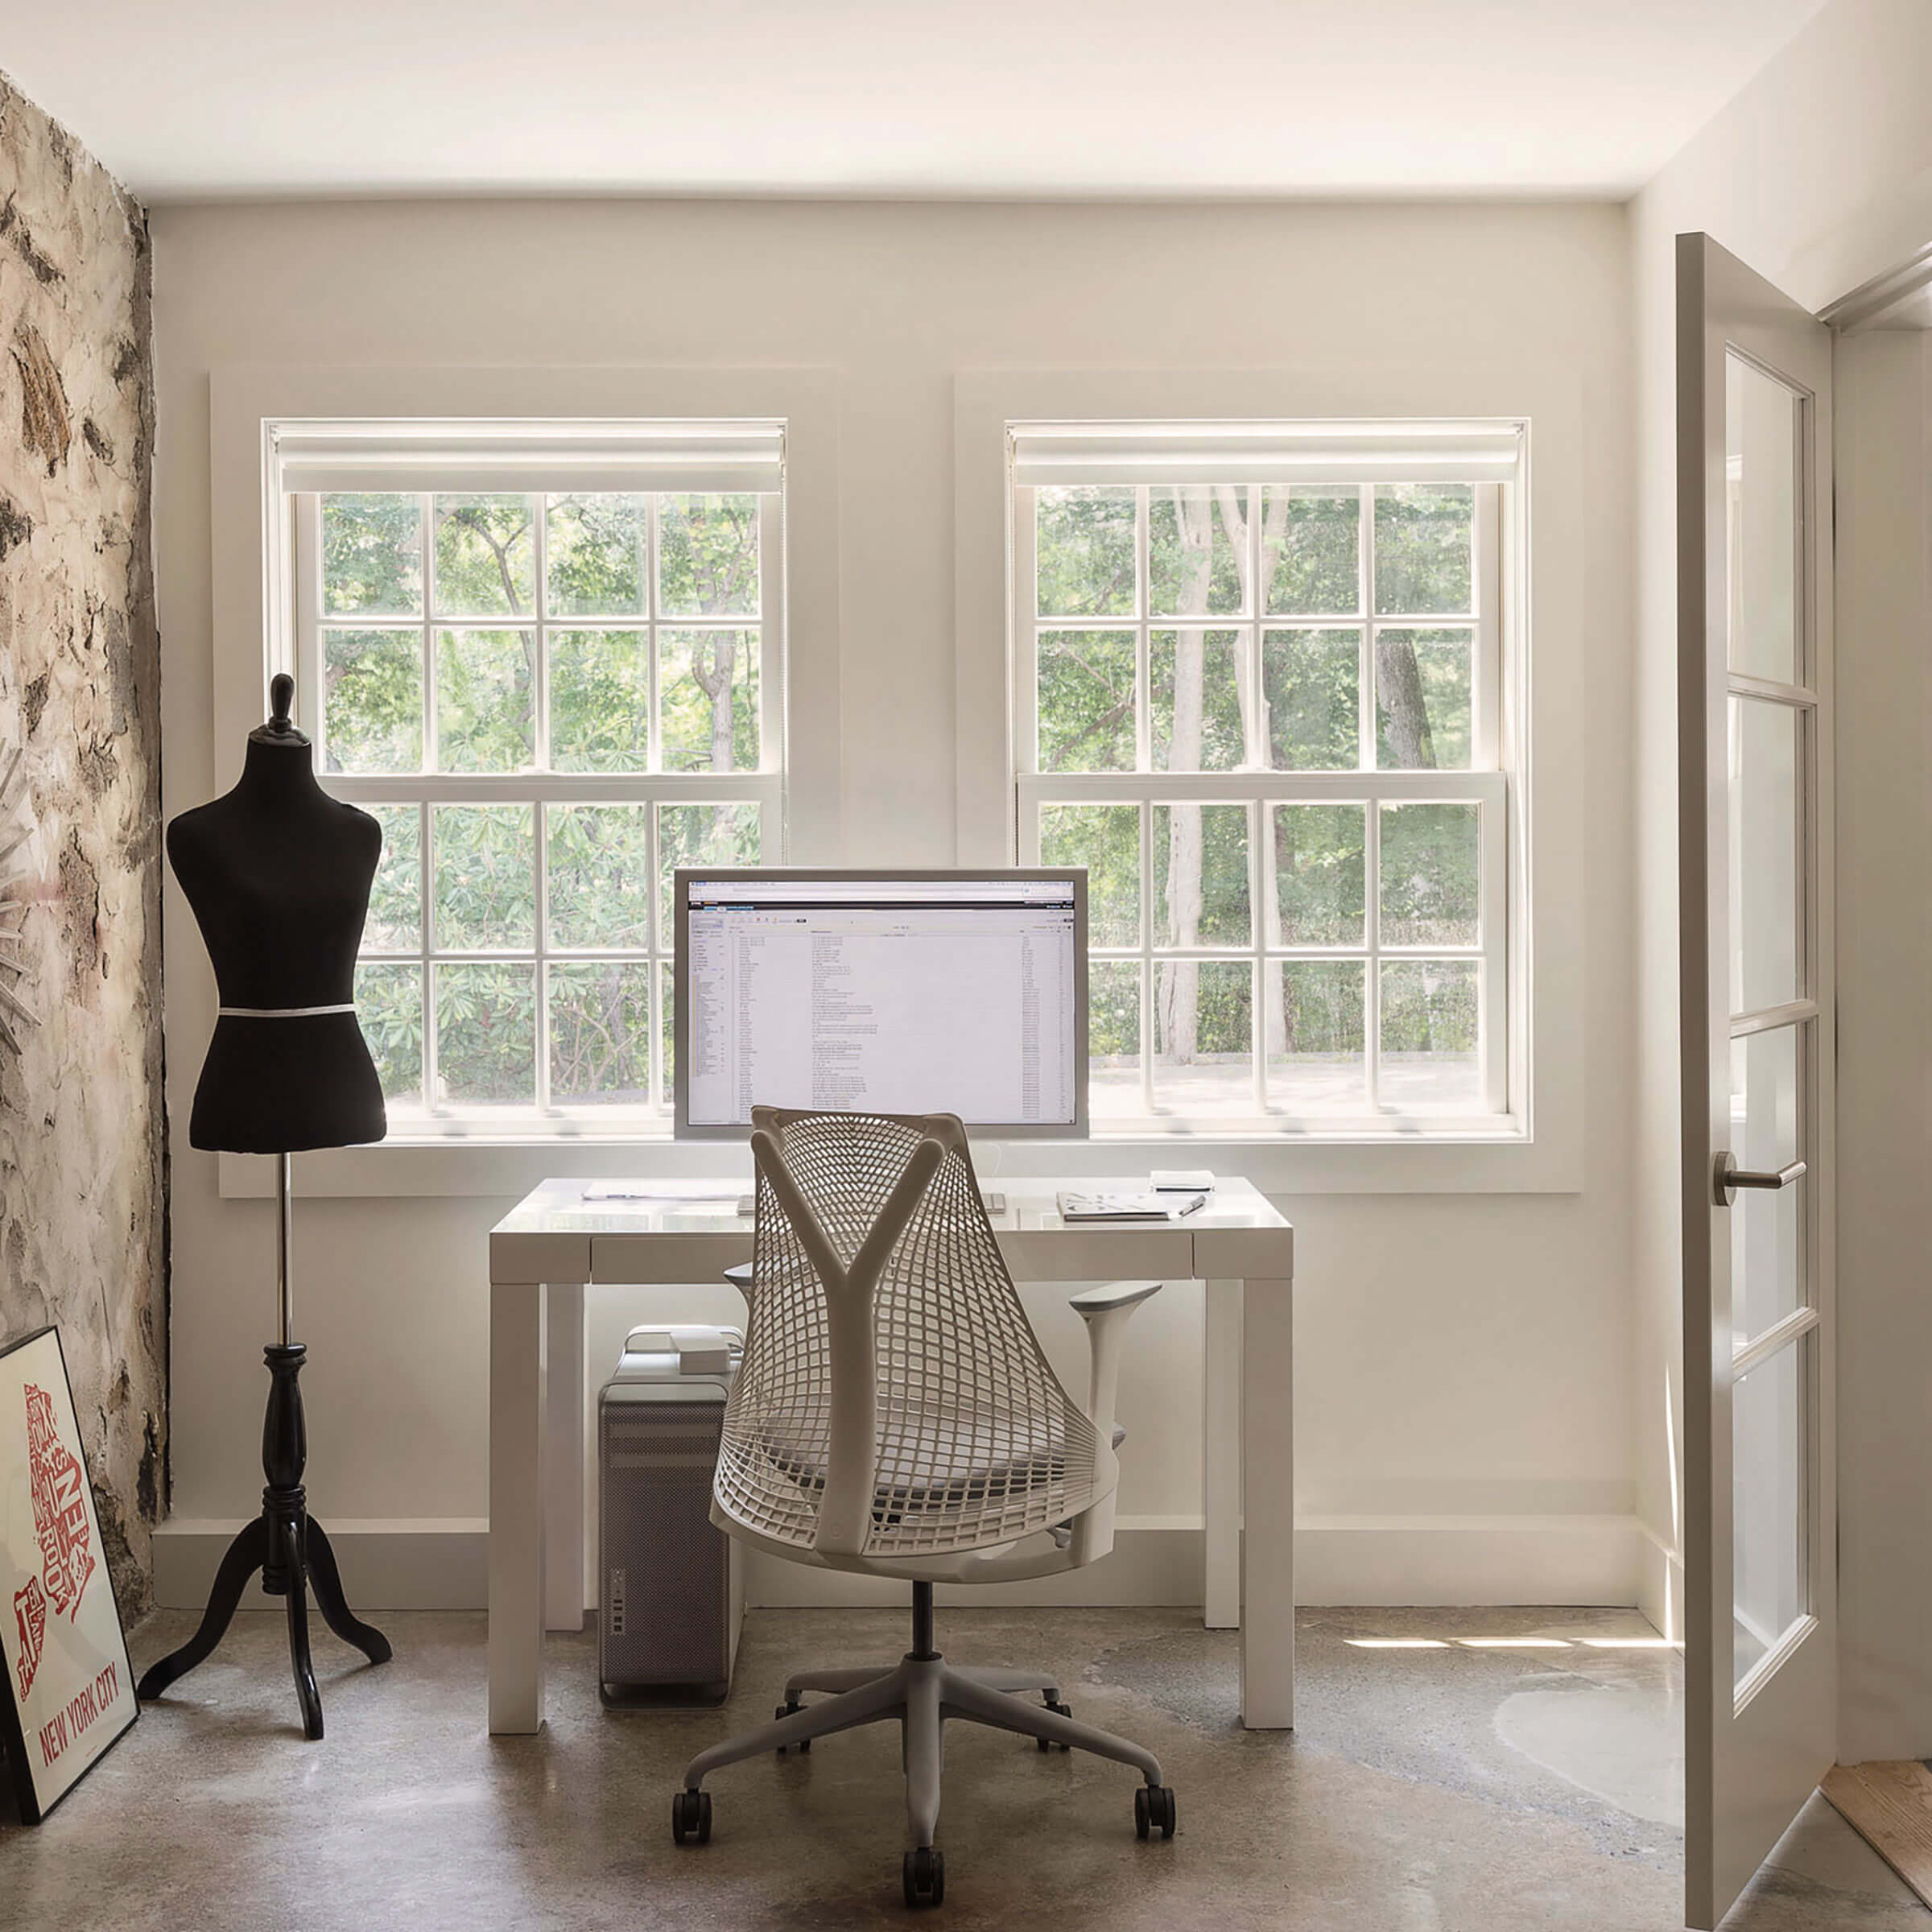 Home Office With Marvin Elevate Double Hung Insert Windows